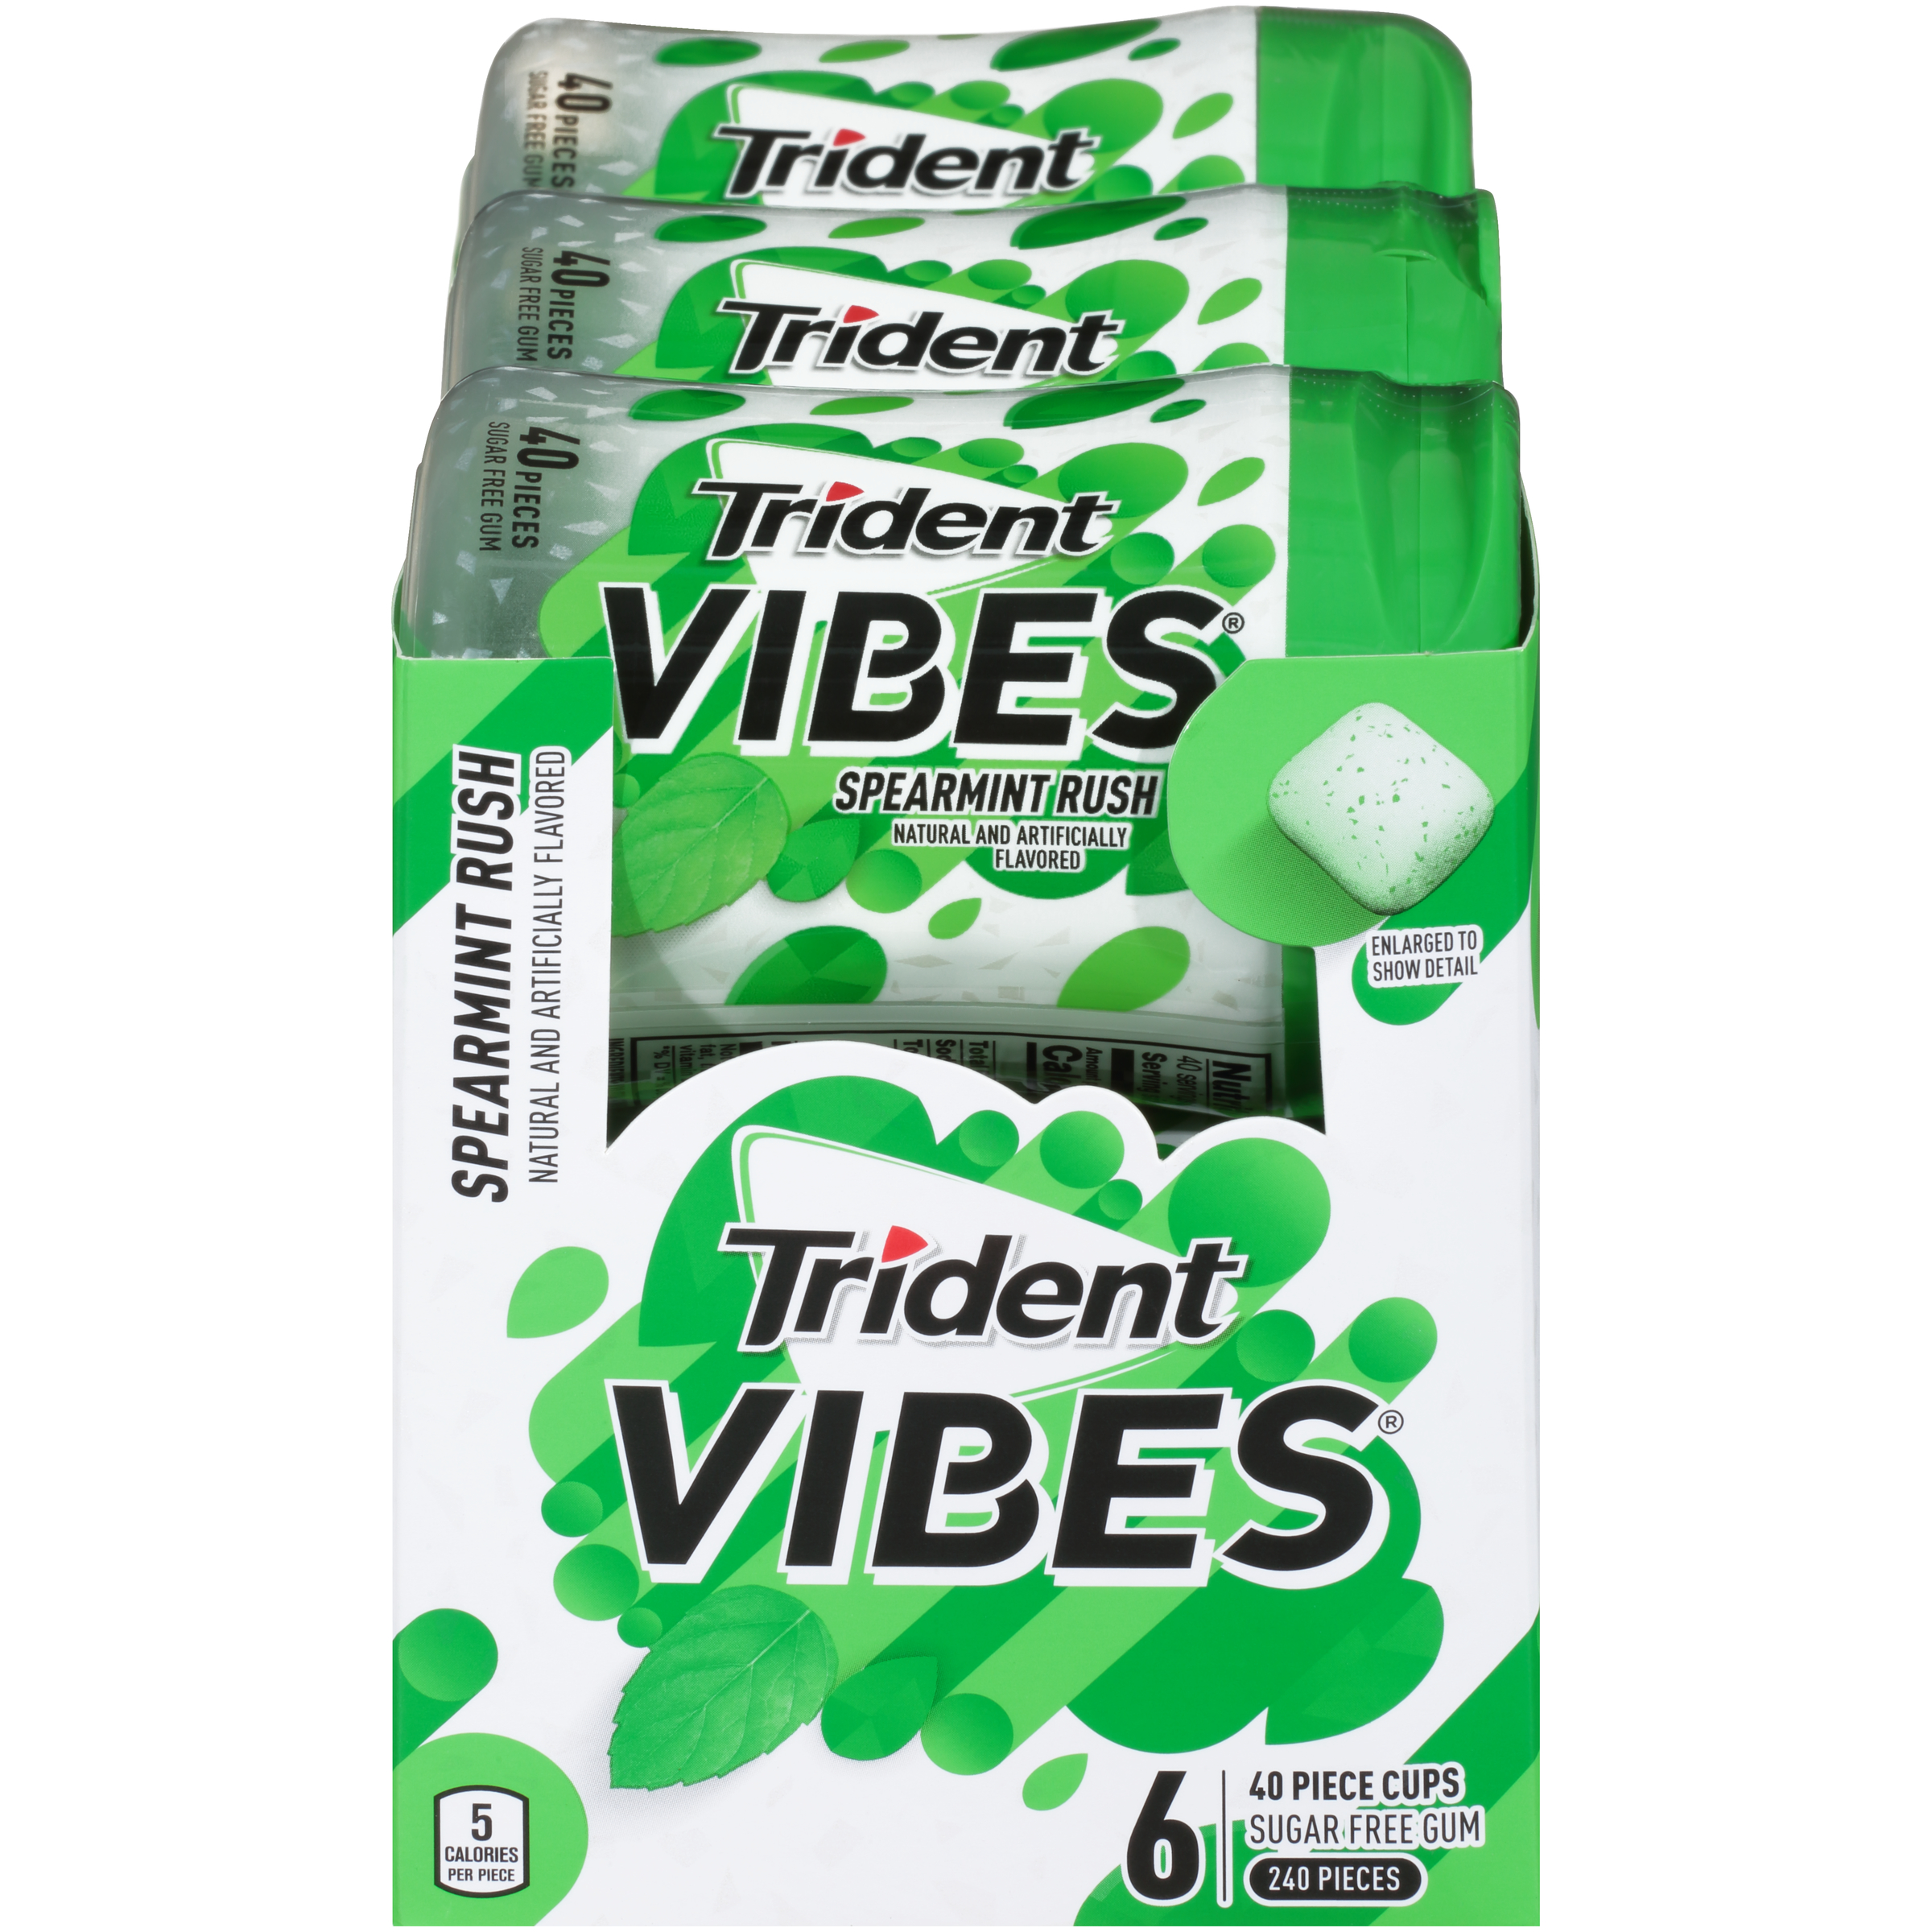 Trident Vibes, Sugar Free Spearmint Rush Chewing Gum, 40 Pcs, 6 Ct